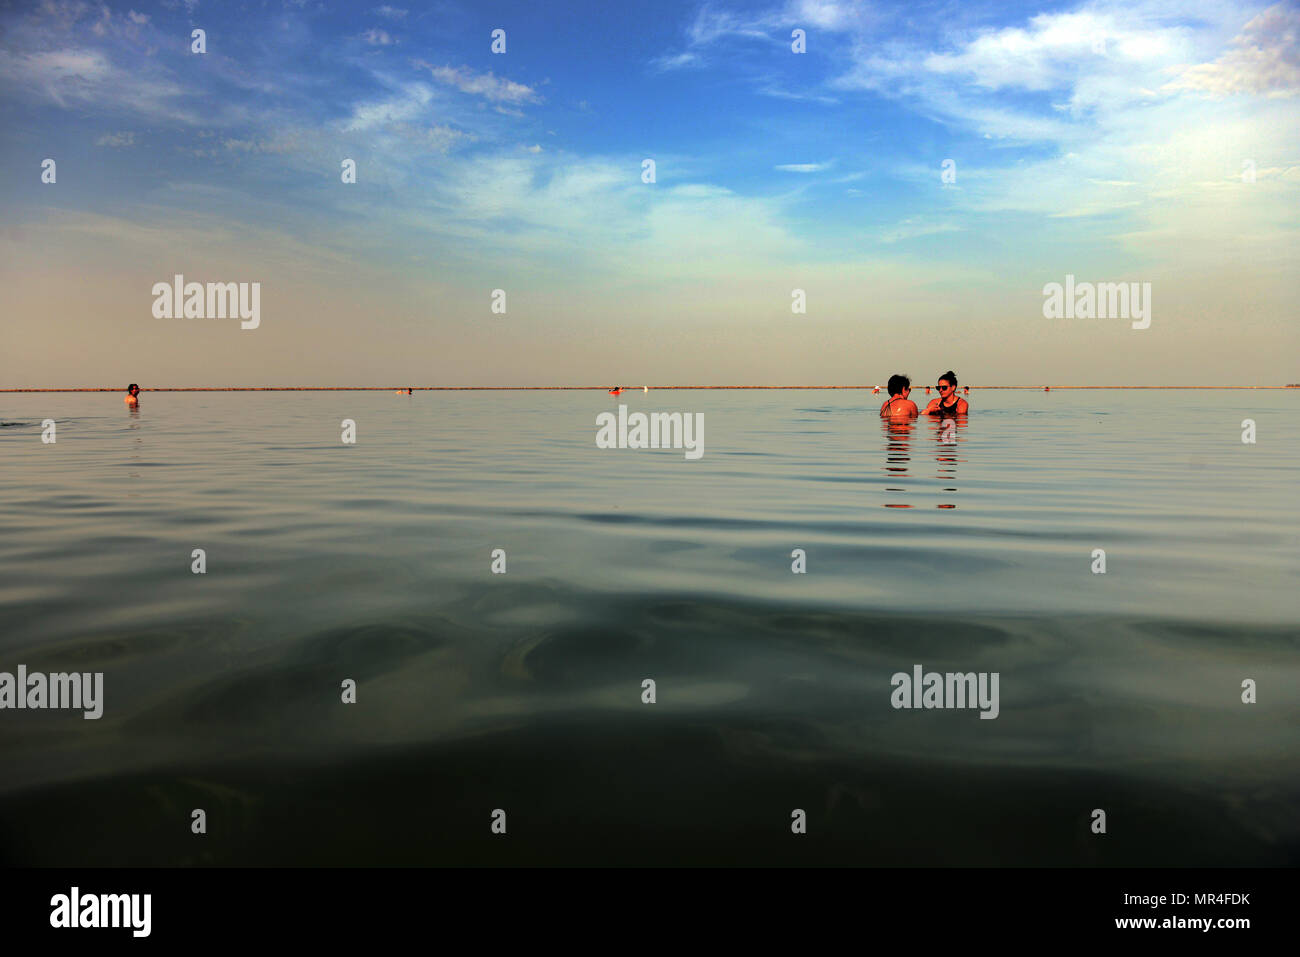 A relaxing afternoon in the Dead Sea in Israel. - Stock Image